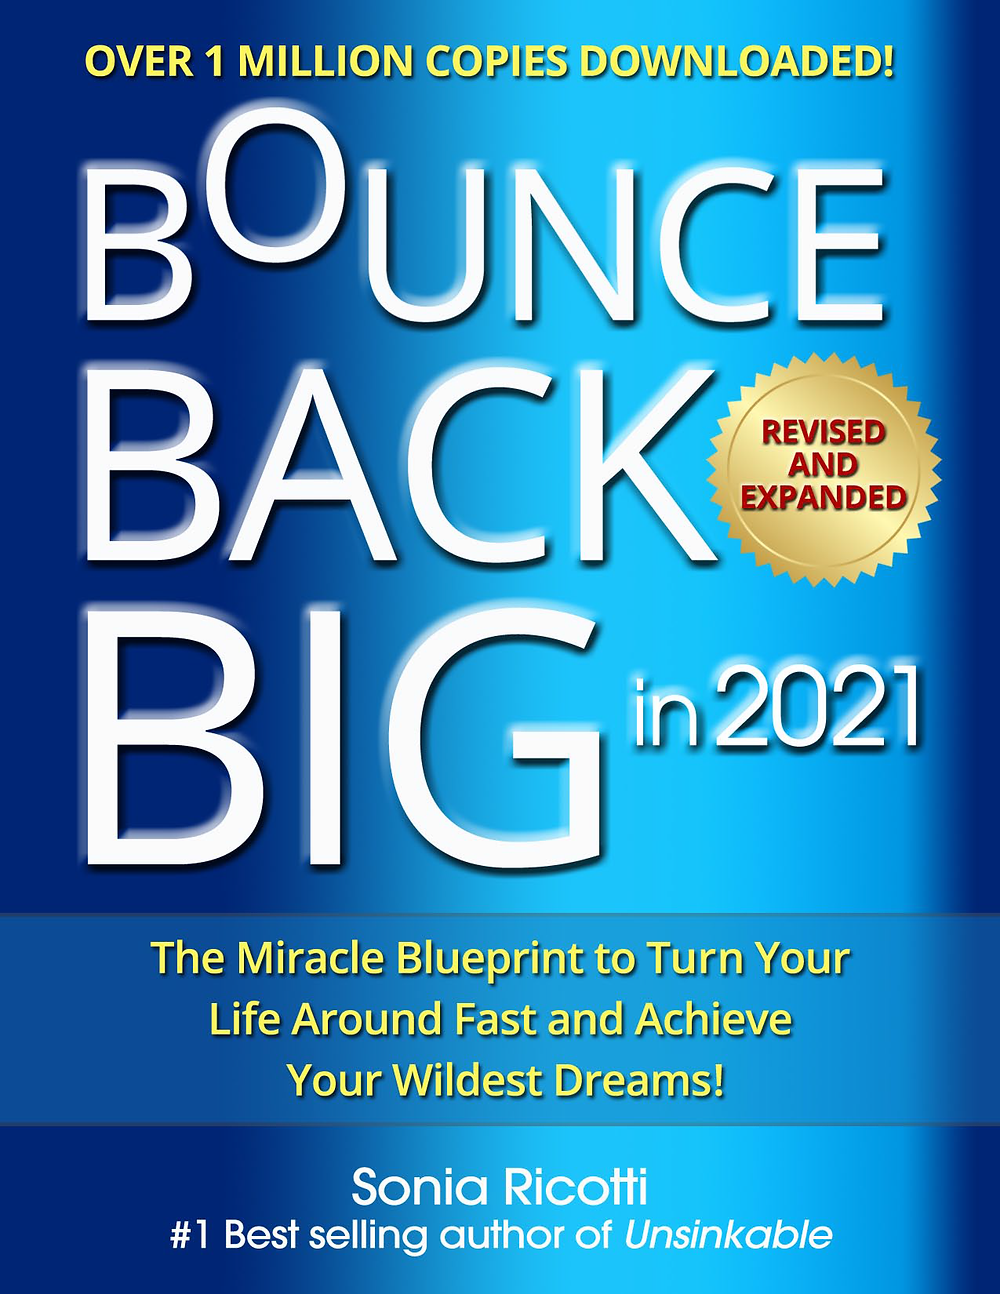 Bounce Back Big In 2021 Ebook by Sonia Ricotti - New Edition